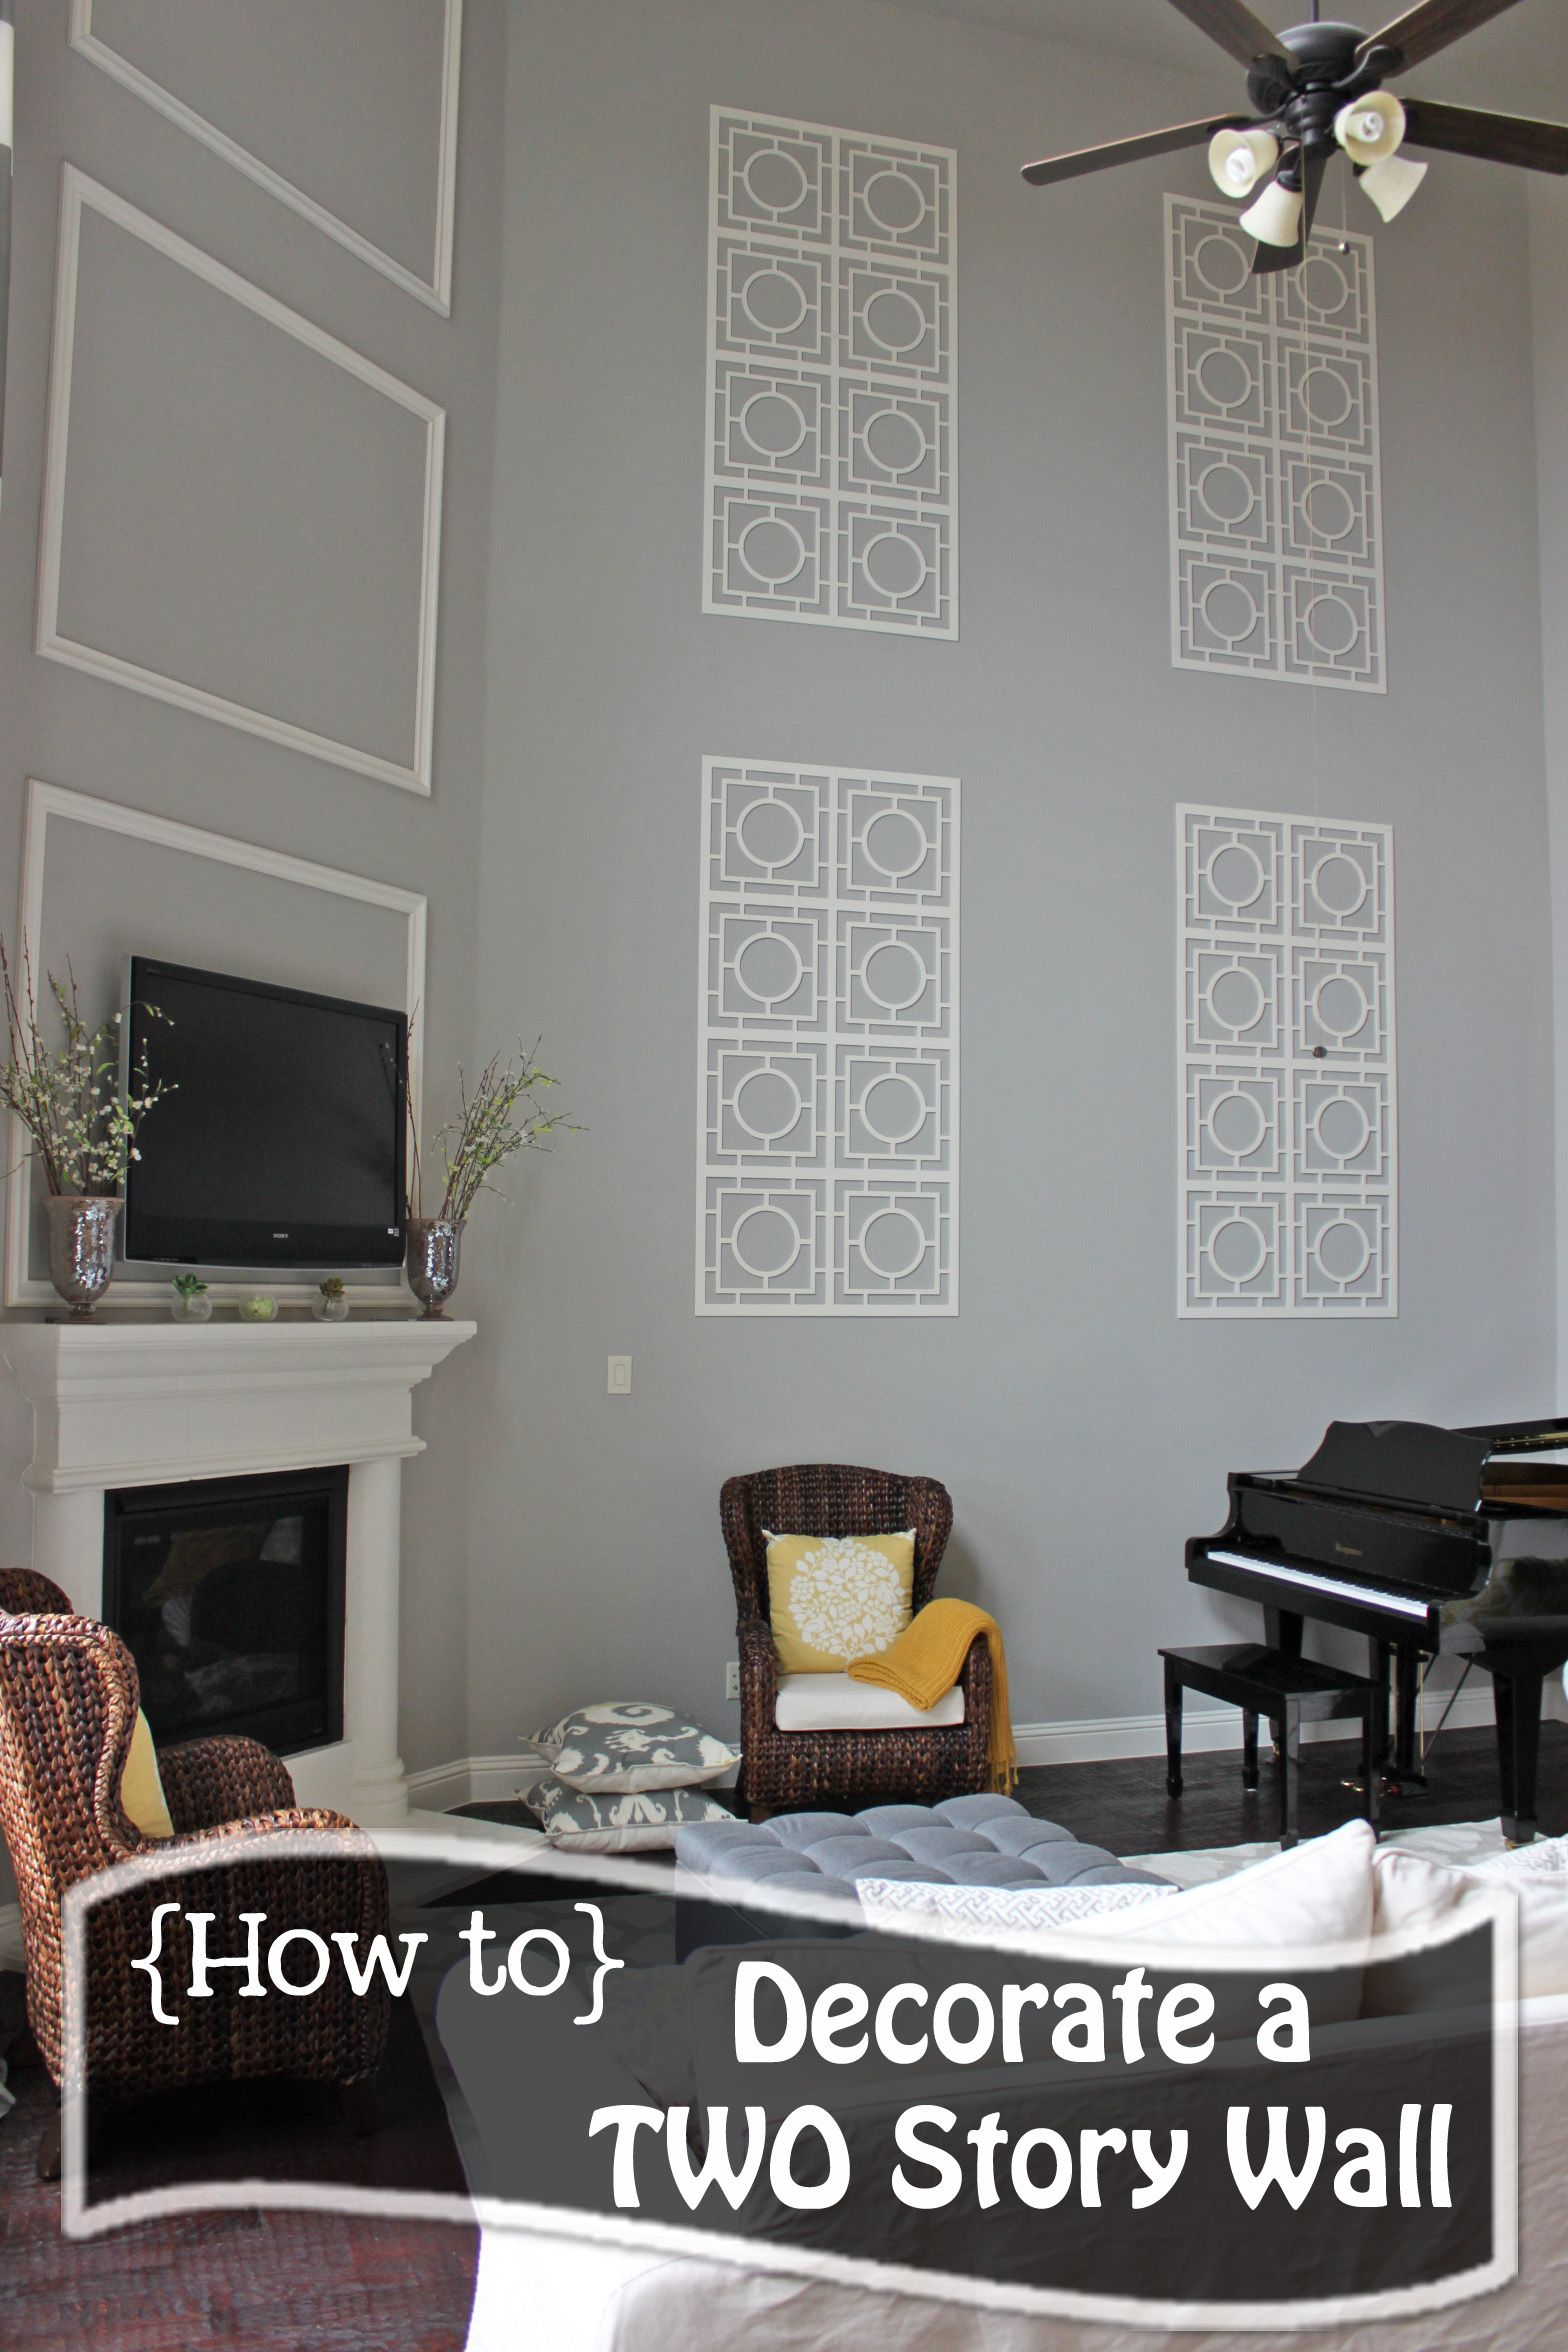 How To Decorate A Two Story Wall What Do With Those Crazy Tall Walls On The